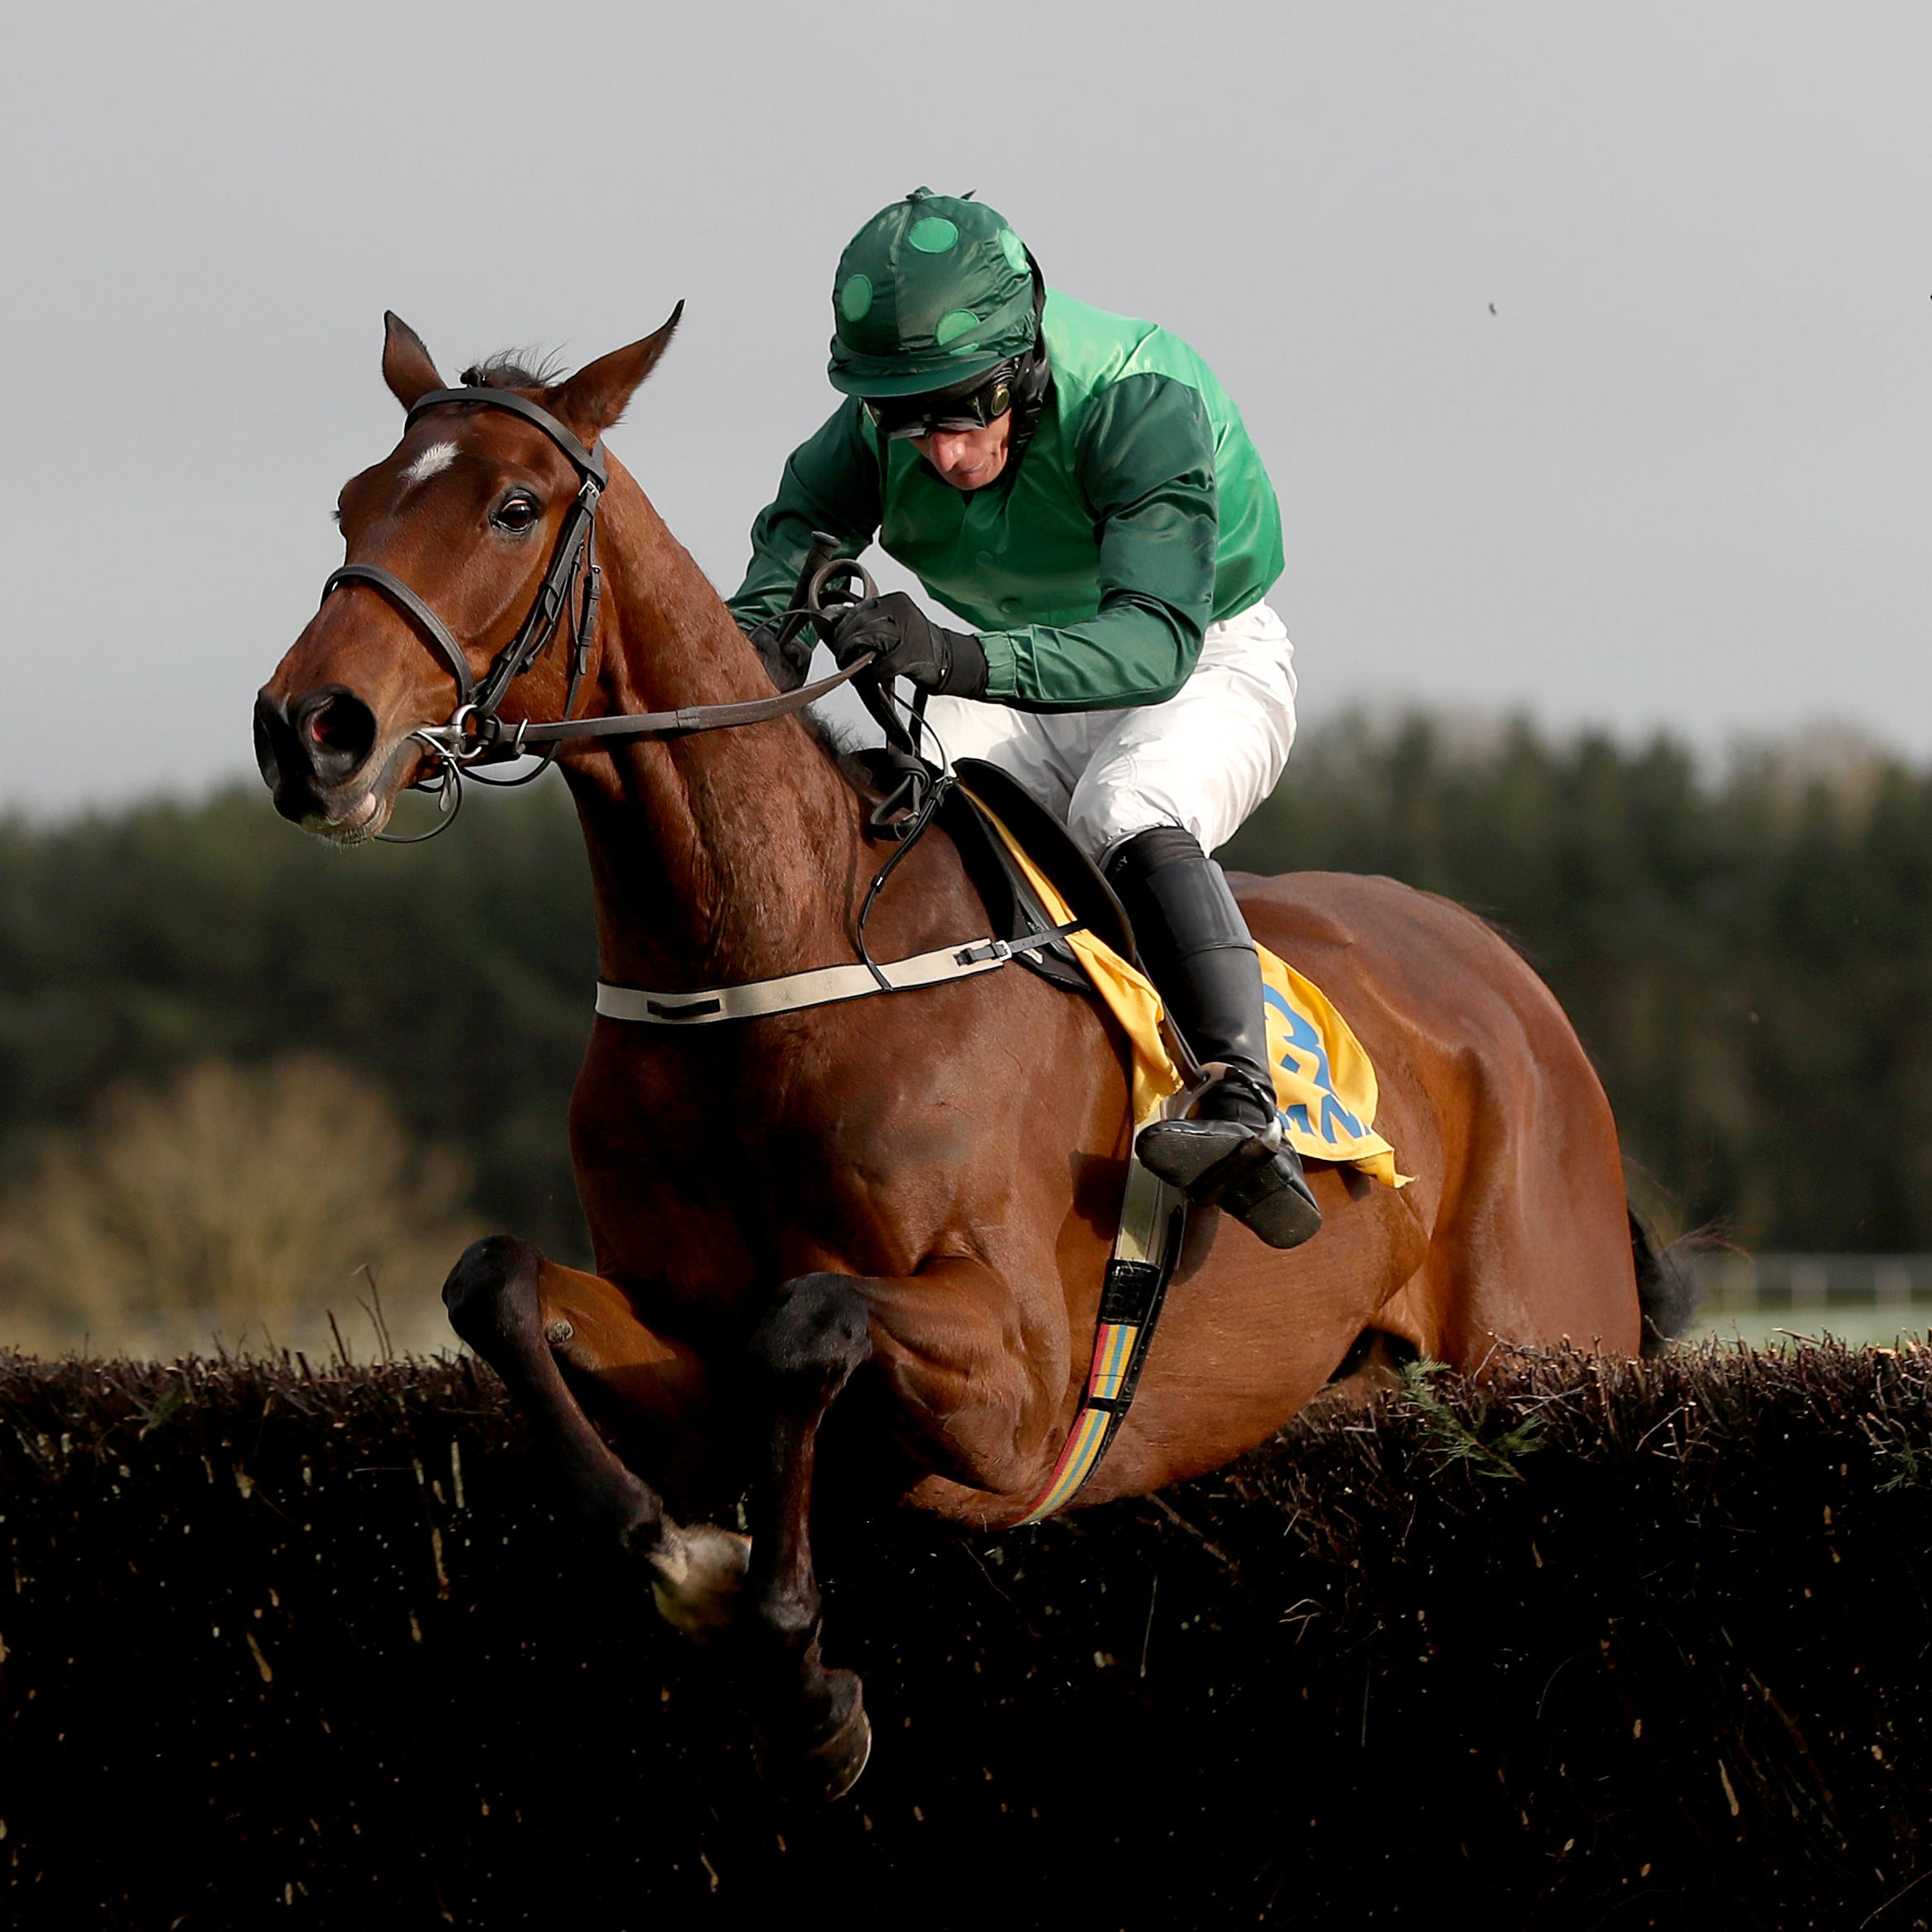 Footpad will hopefully be back in action soon